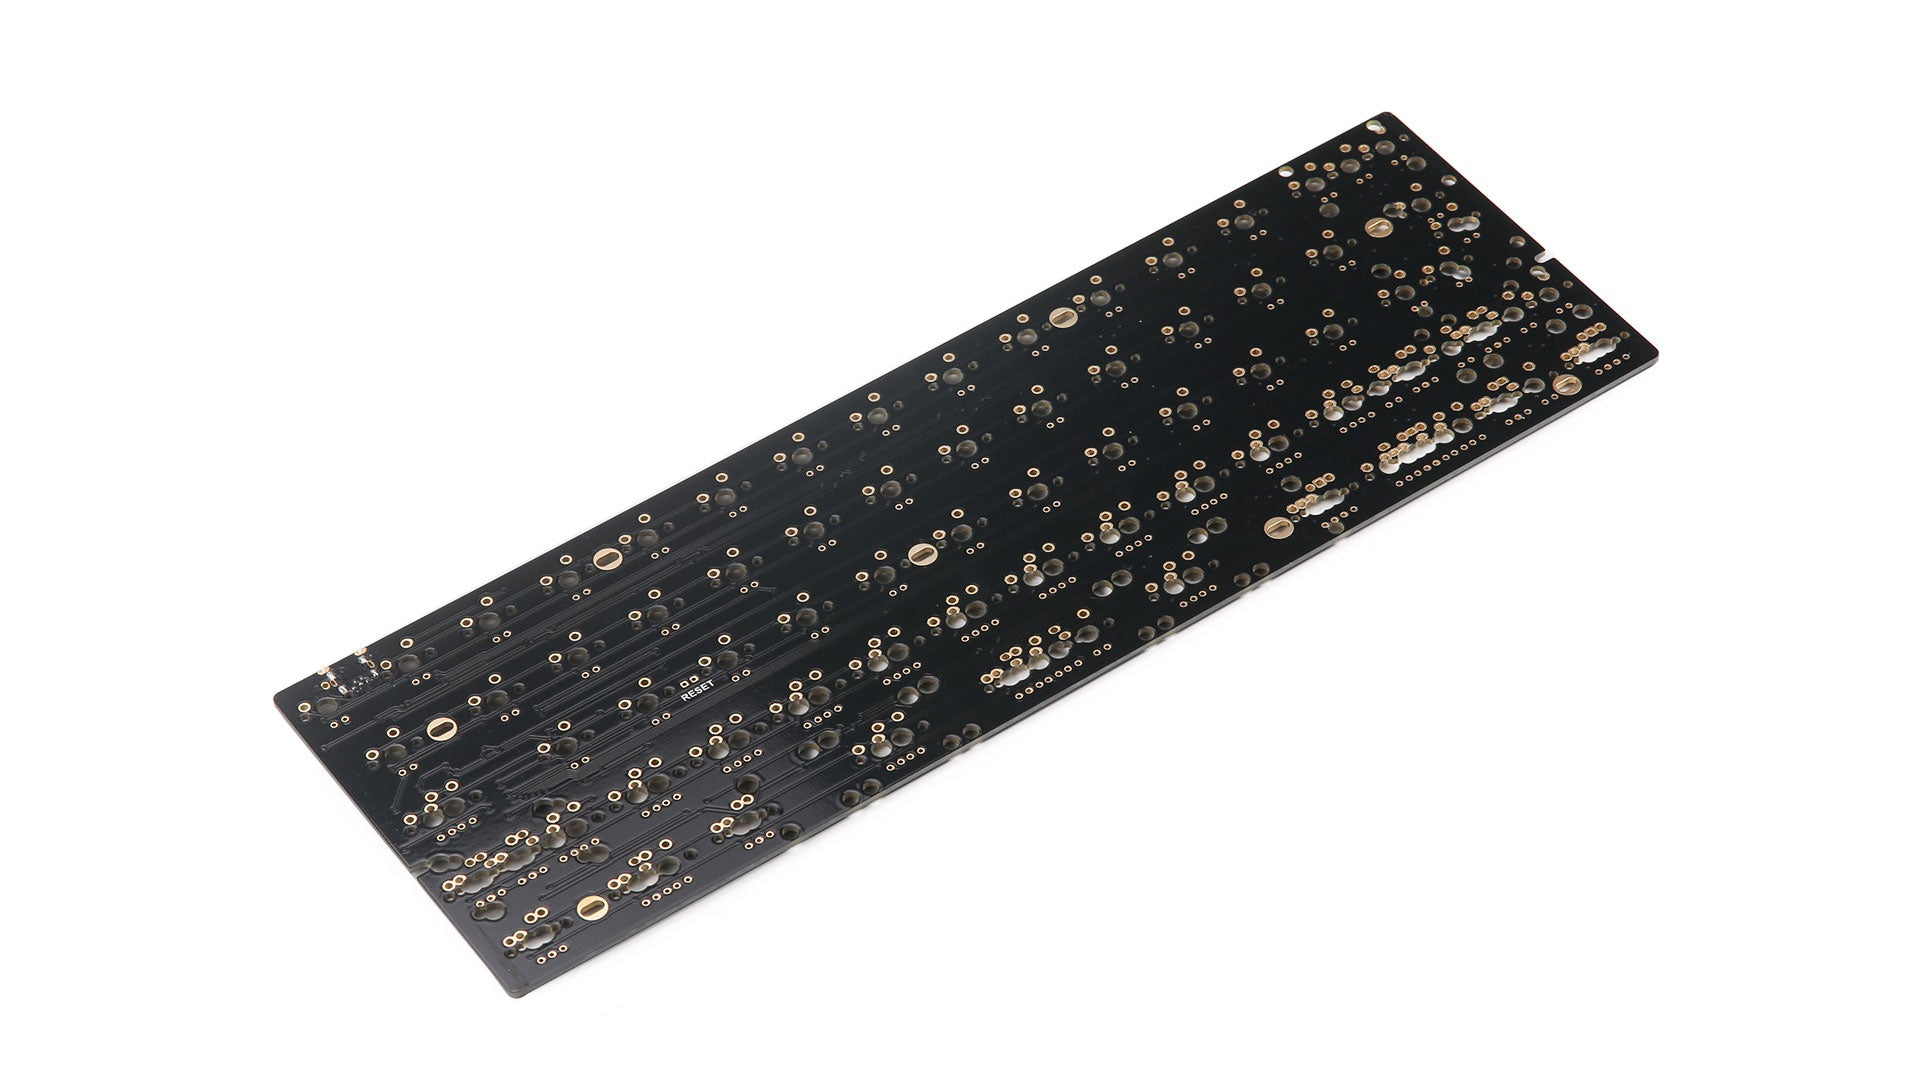 DZ60 REV 2 0 60% MECHANICAL KEYBOARD PCB – KBDfans Mechanical